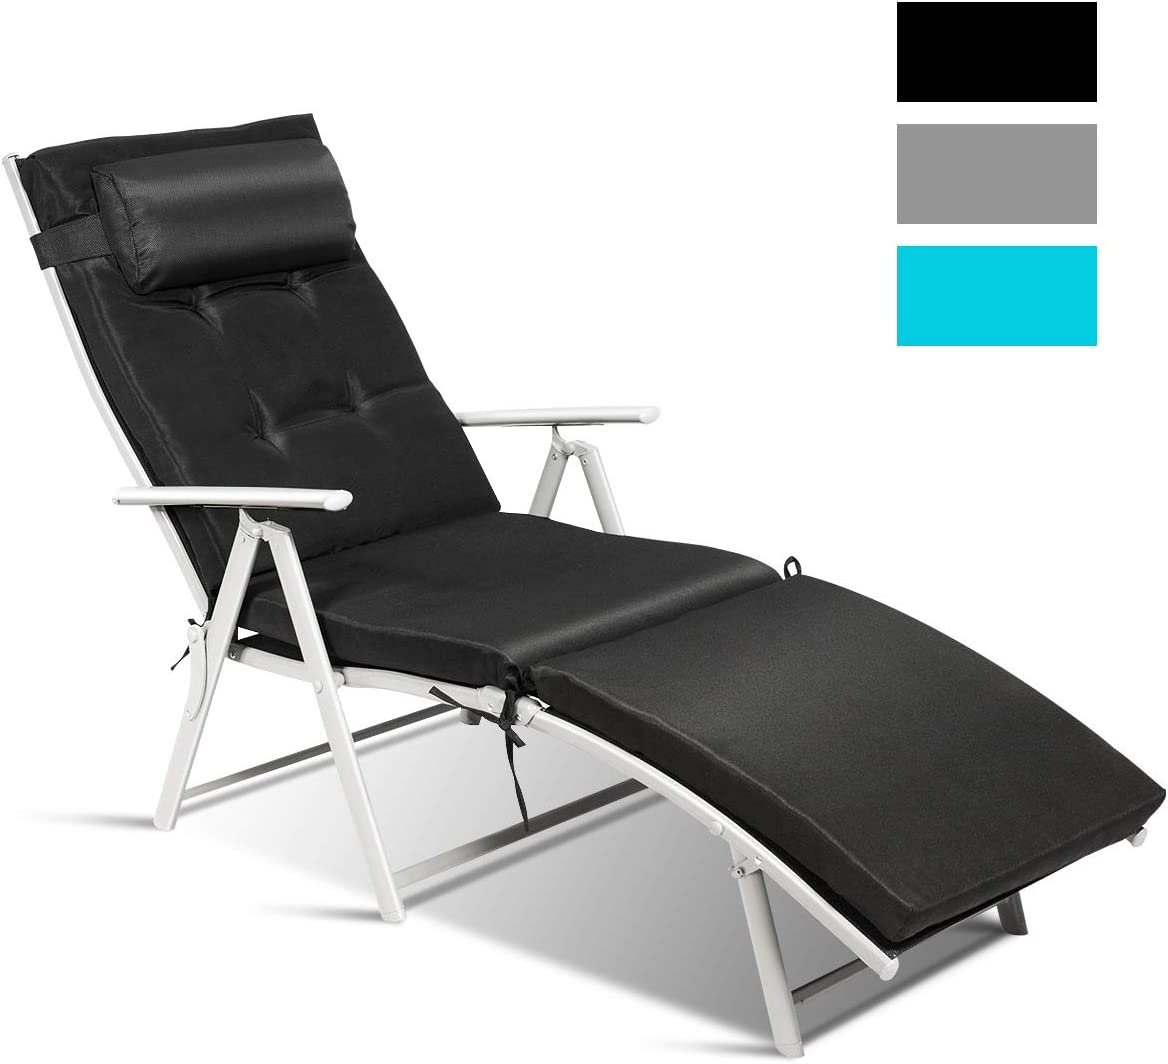 - Amazon.com: Tangkula Outdoor Folding Chaise Lounge Chair